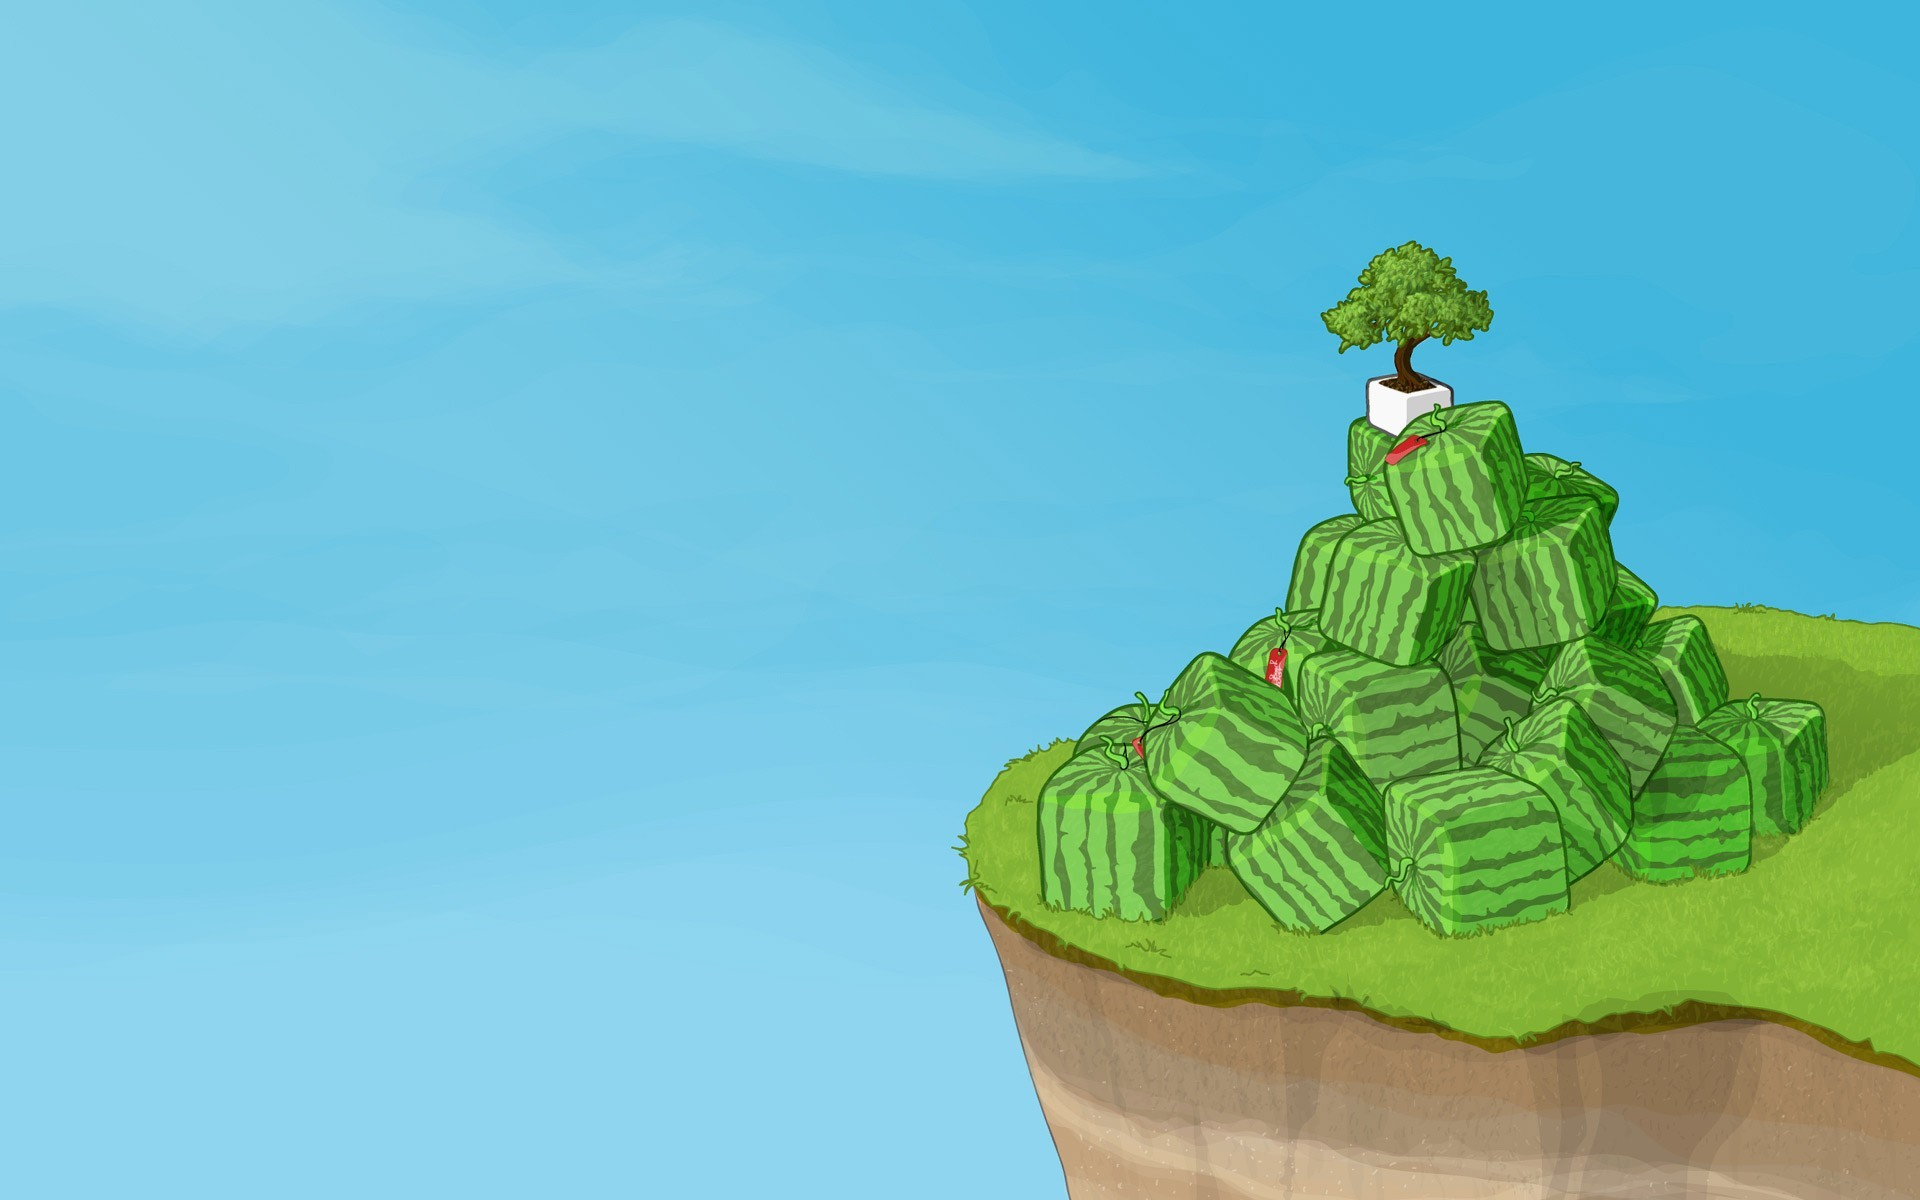 Square watermelons on a cliff